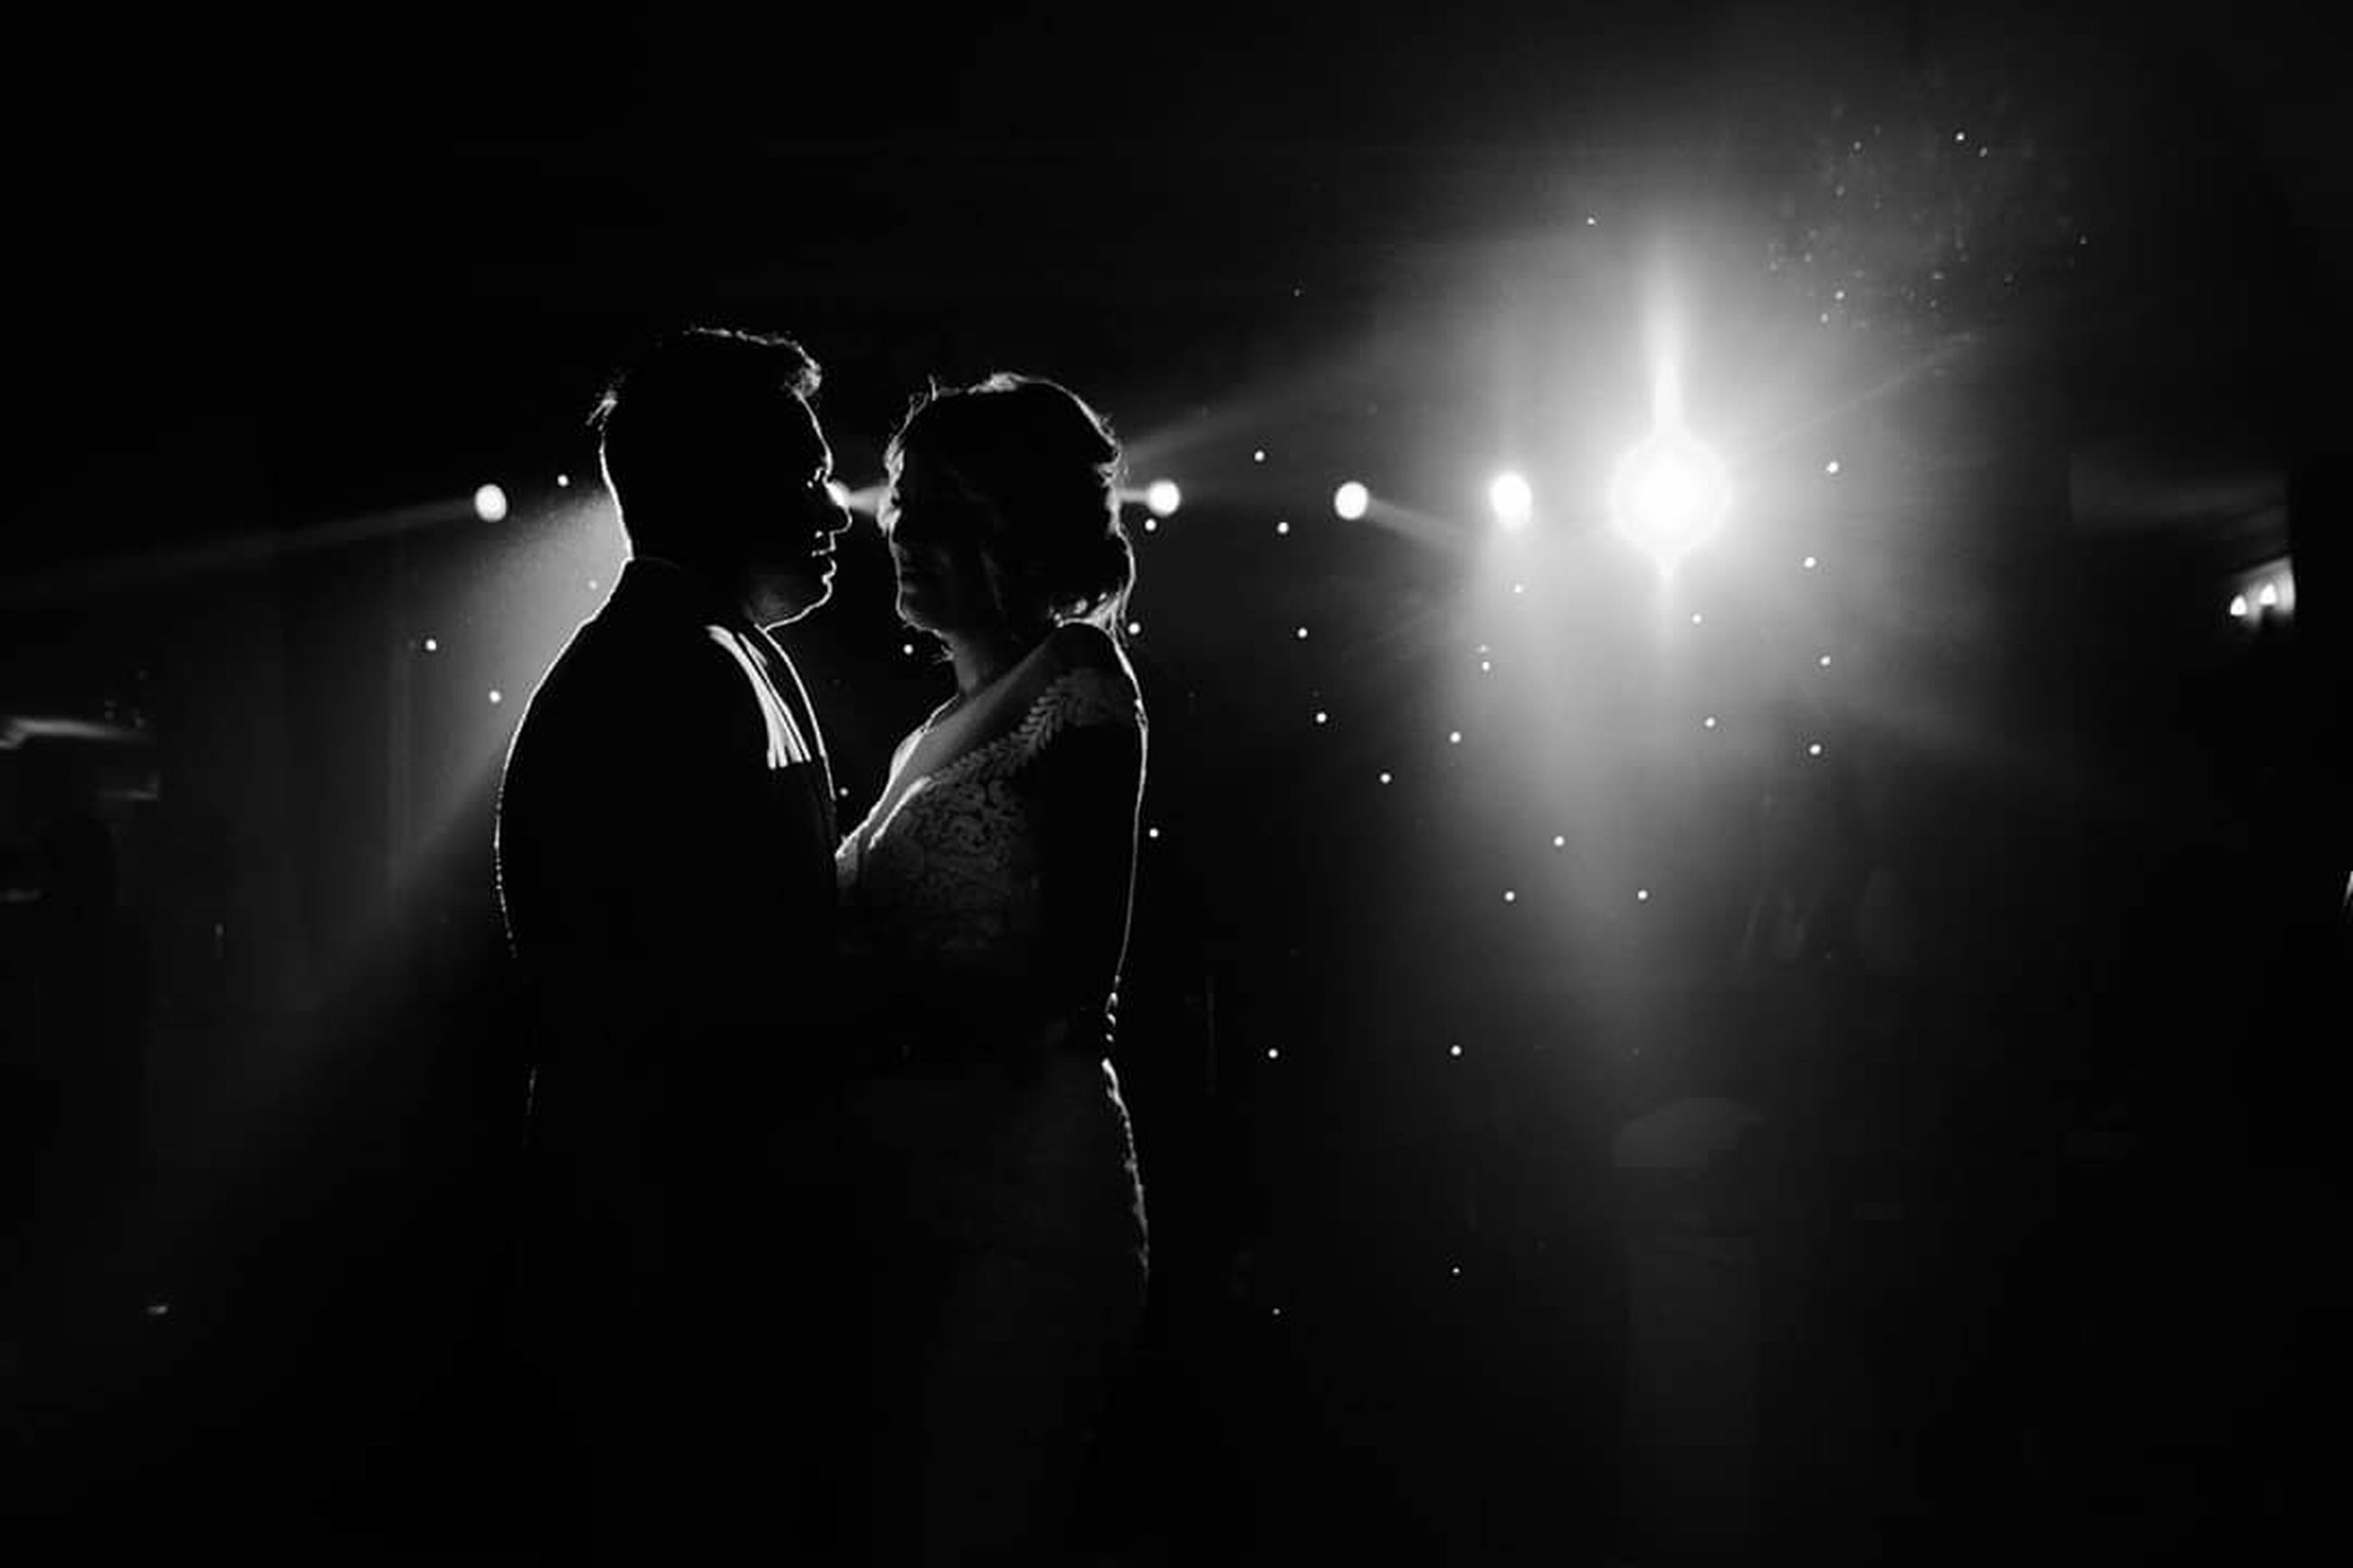 two people, night, togetherness, illuminated, love, couple - relationship, positive emotion, emotion, adult, men, indoors, heterosexual couple, arts culture and entertainment, people, silhouette, nightlife, standing, back lit, event, women, stage